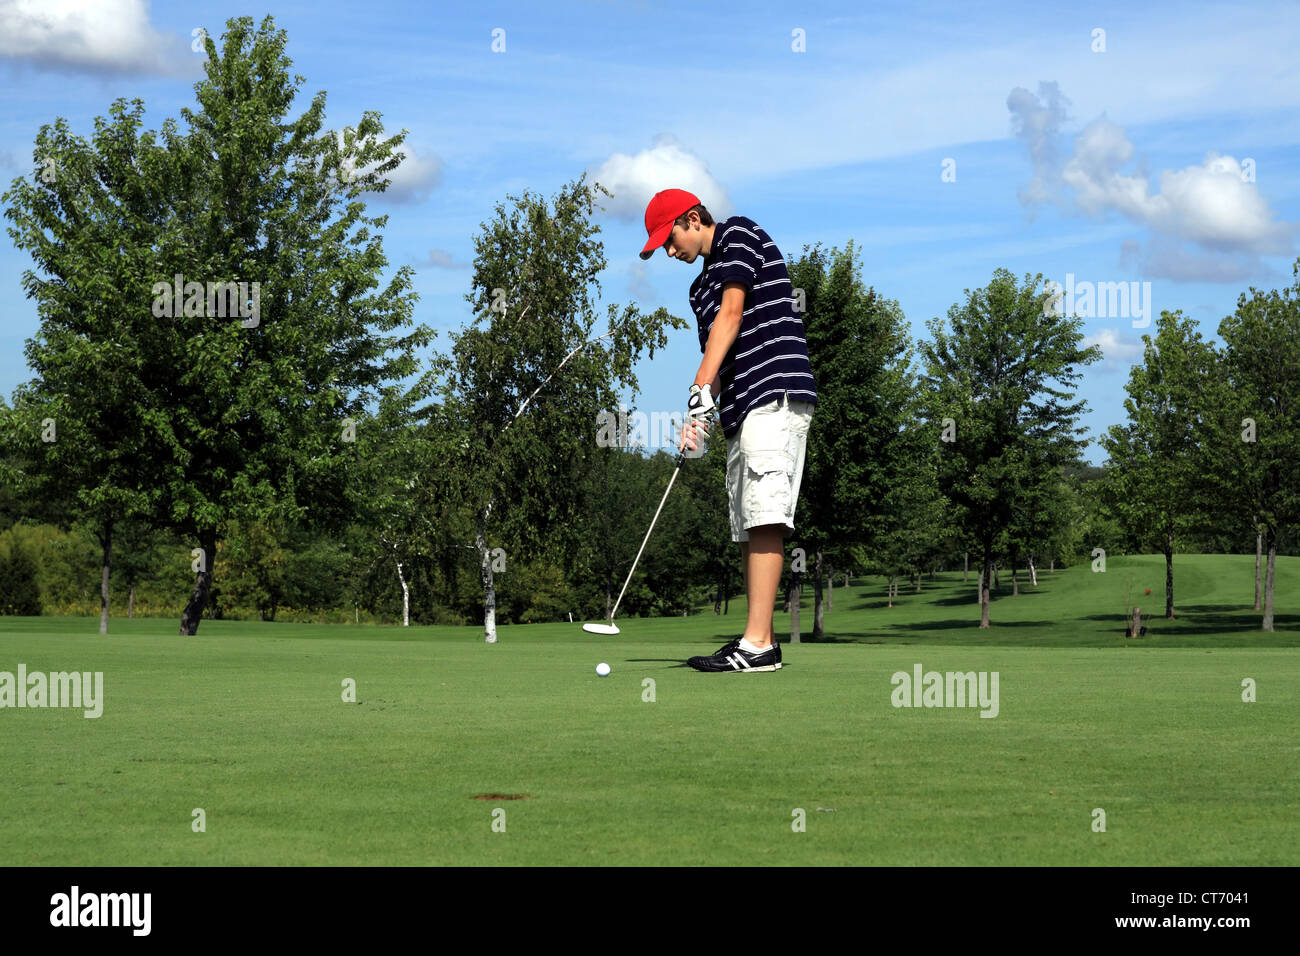 Young golfer on putting green - Stock Image